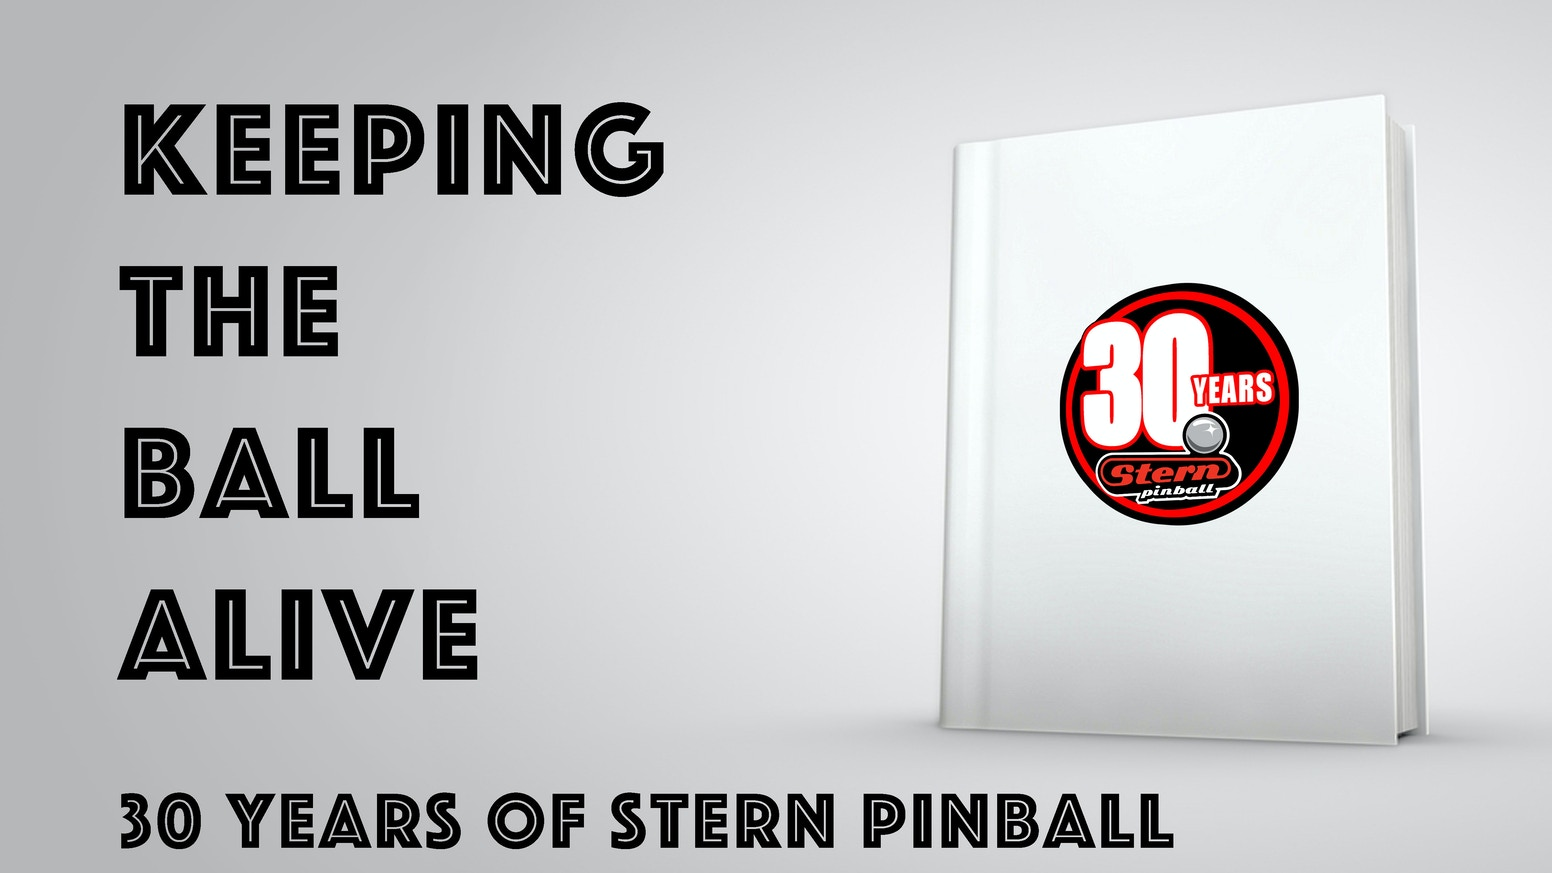 Keeping the Ball Alive: 30 Years of Stern Pinball by PaperFlock Inc